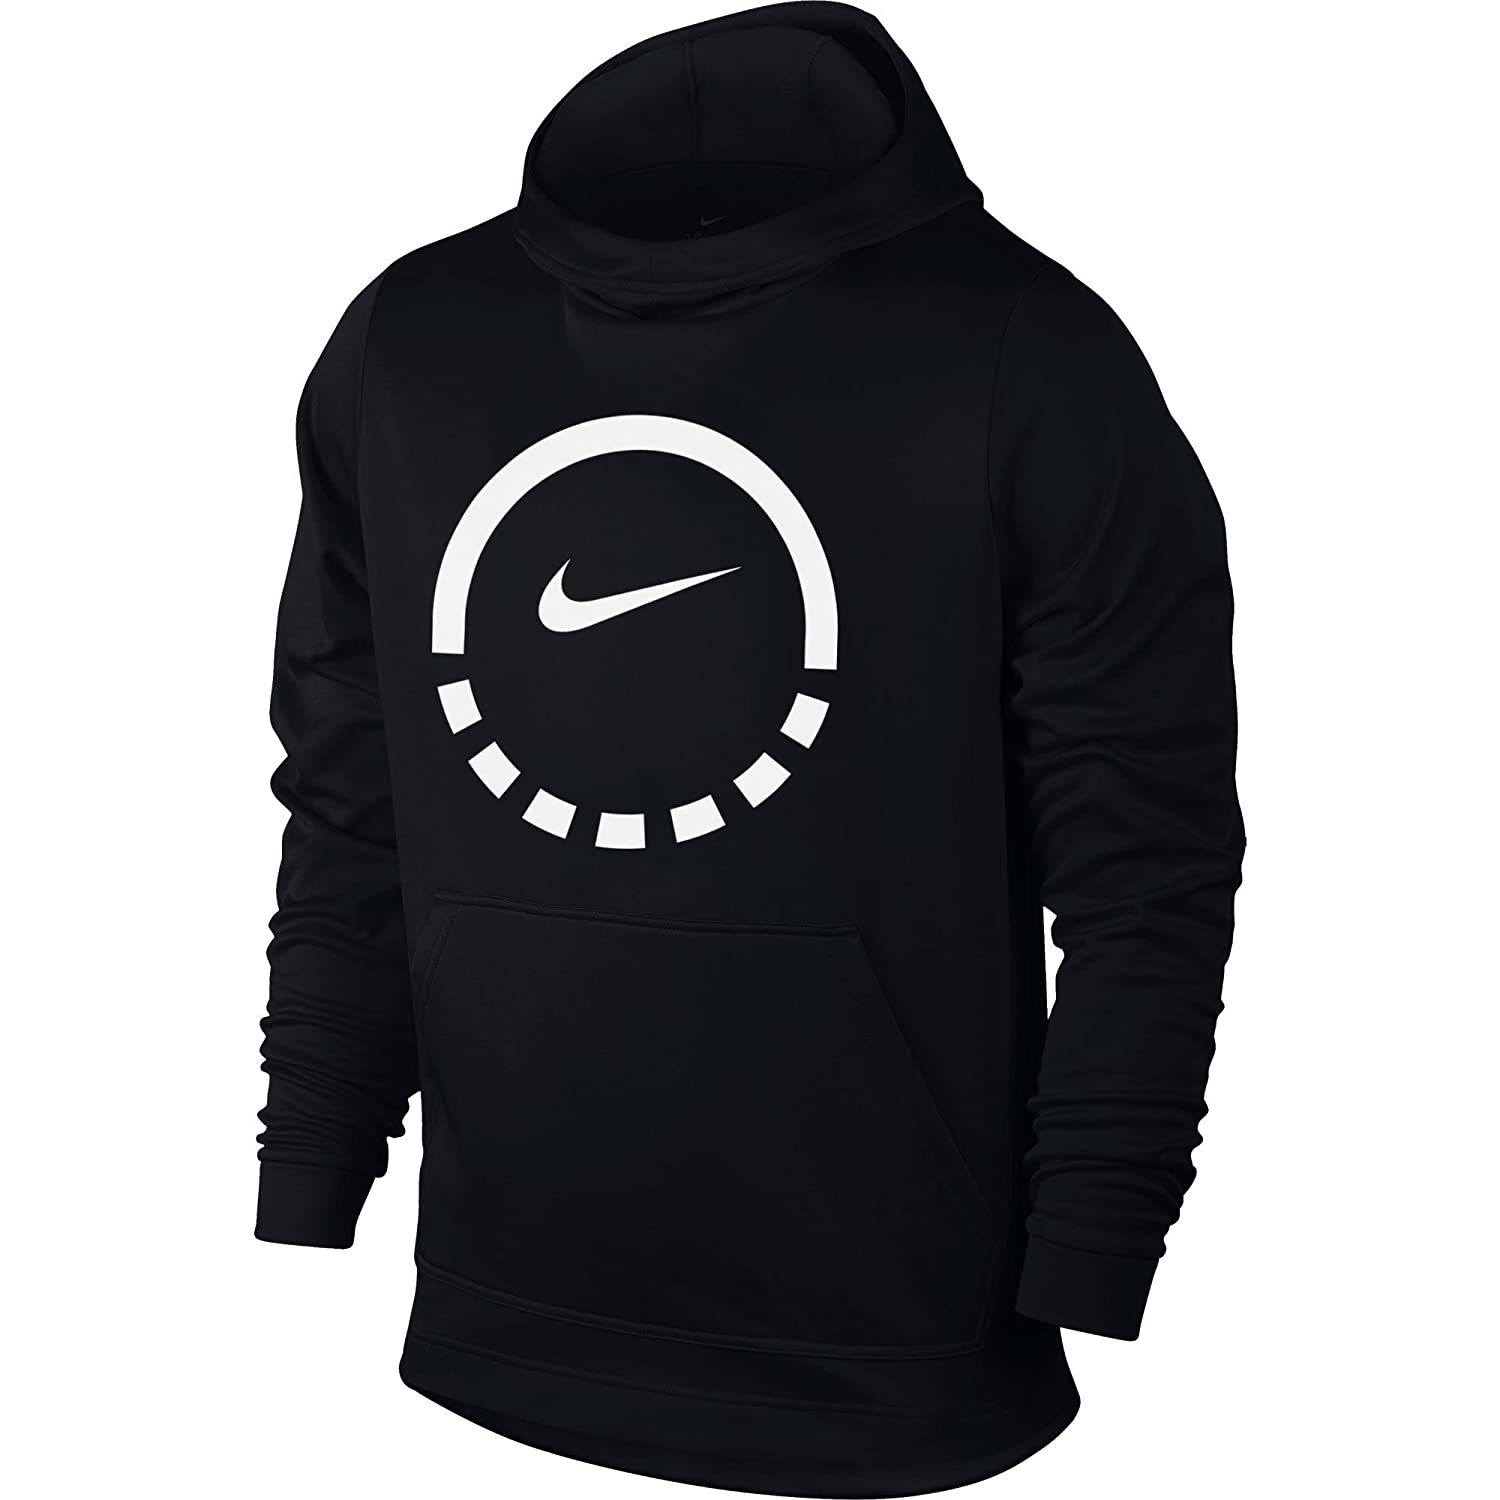 95096257f152 Amazon.com  Nike Men s Therma Basketball Hoodie Black Anthracite Size  XXX-Large  Clothing